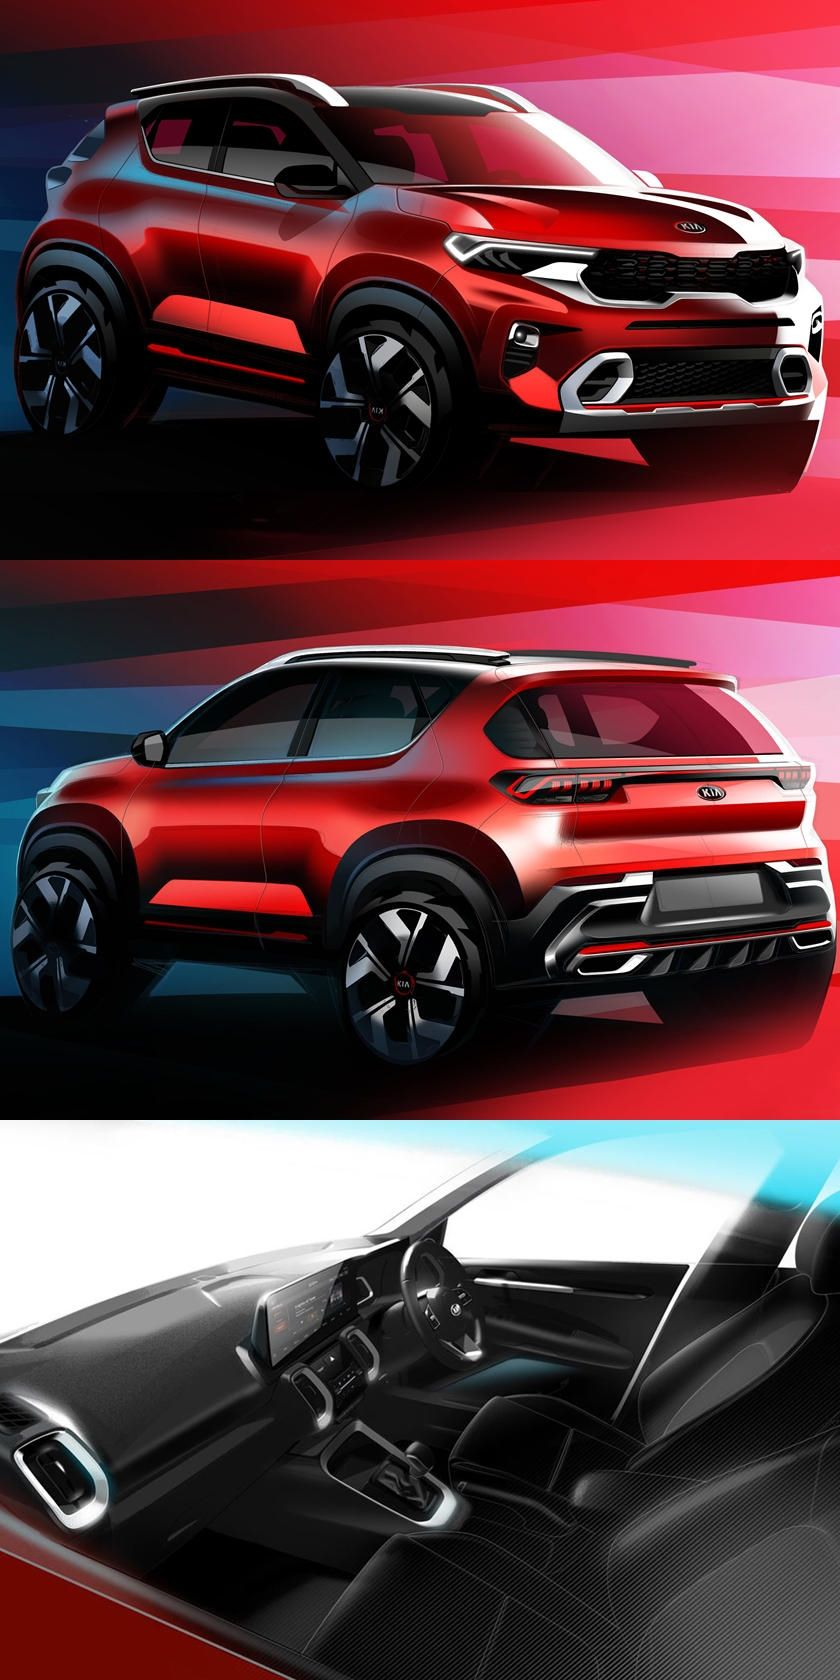 All New Kia Sonet Is A Baby Suv With Powerful Looks Aimed At A Younger Audience In India And Beyond In 2020 Suv Kia New Suv